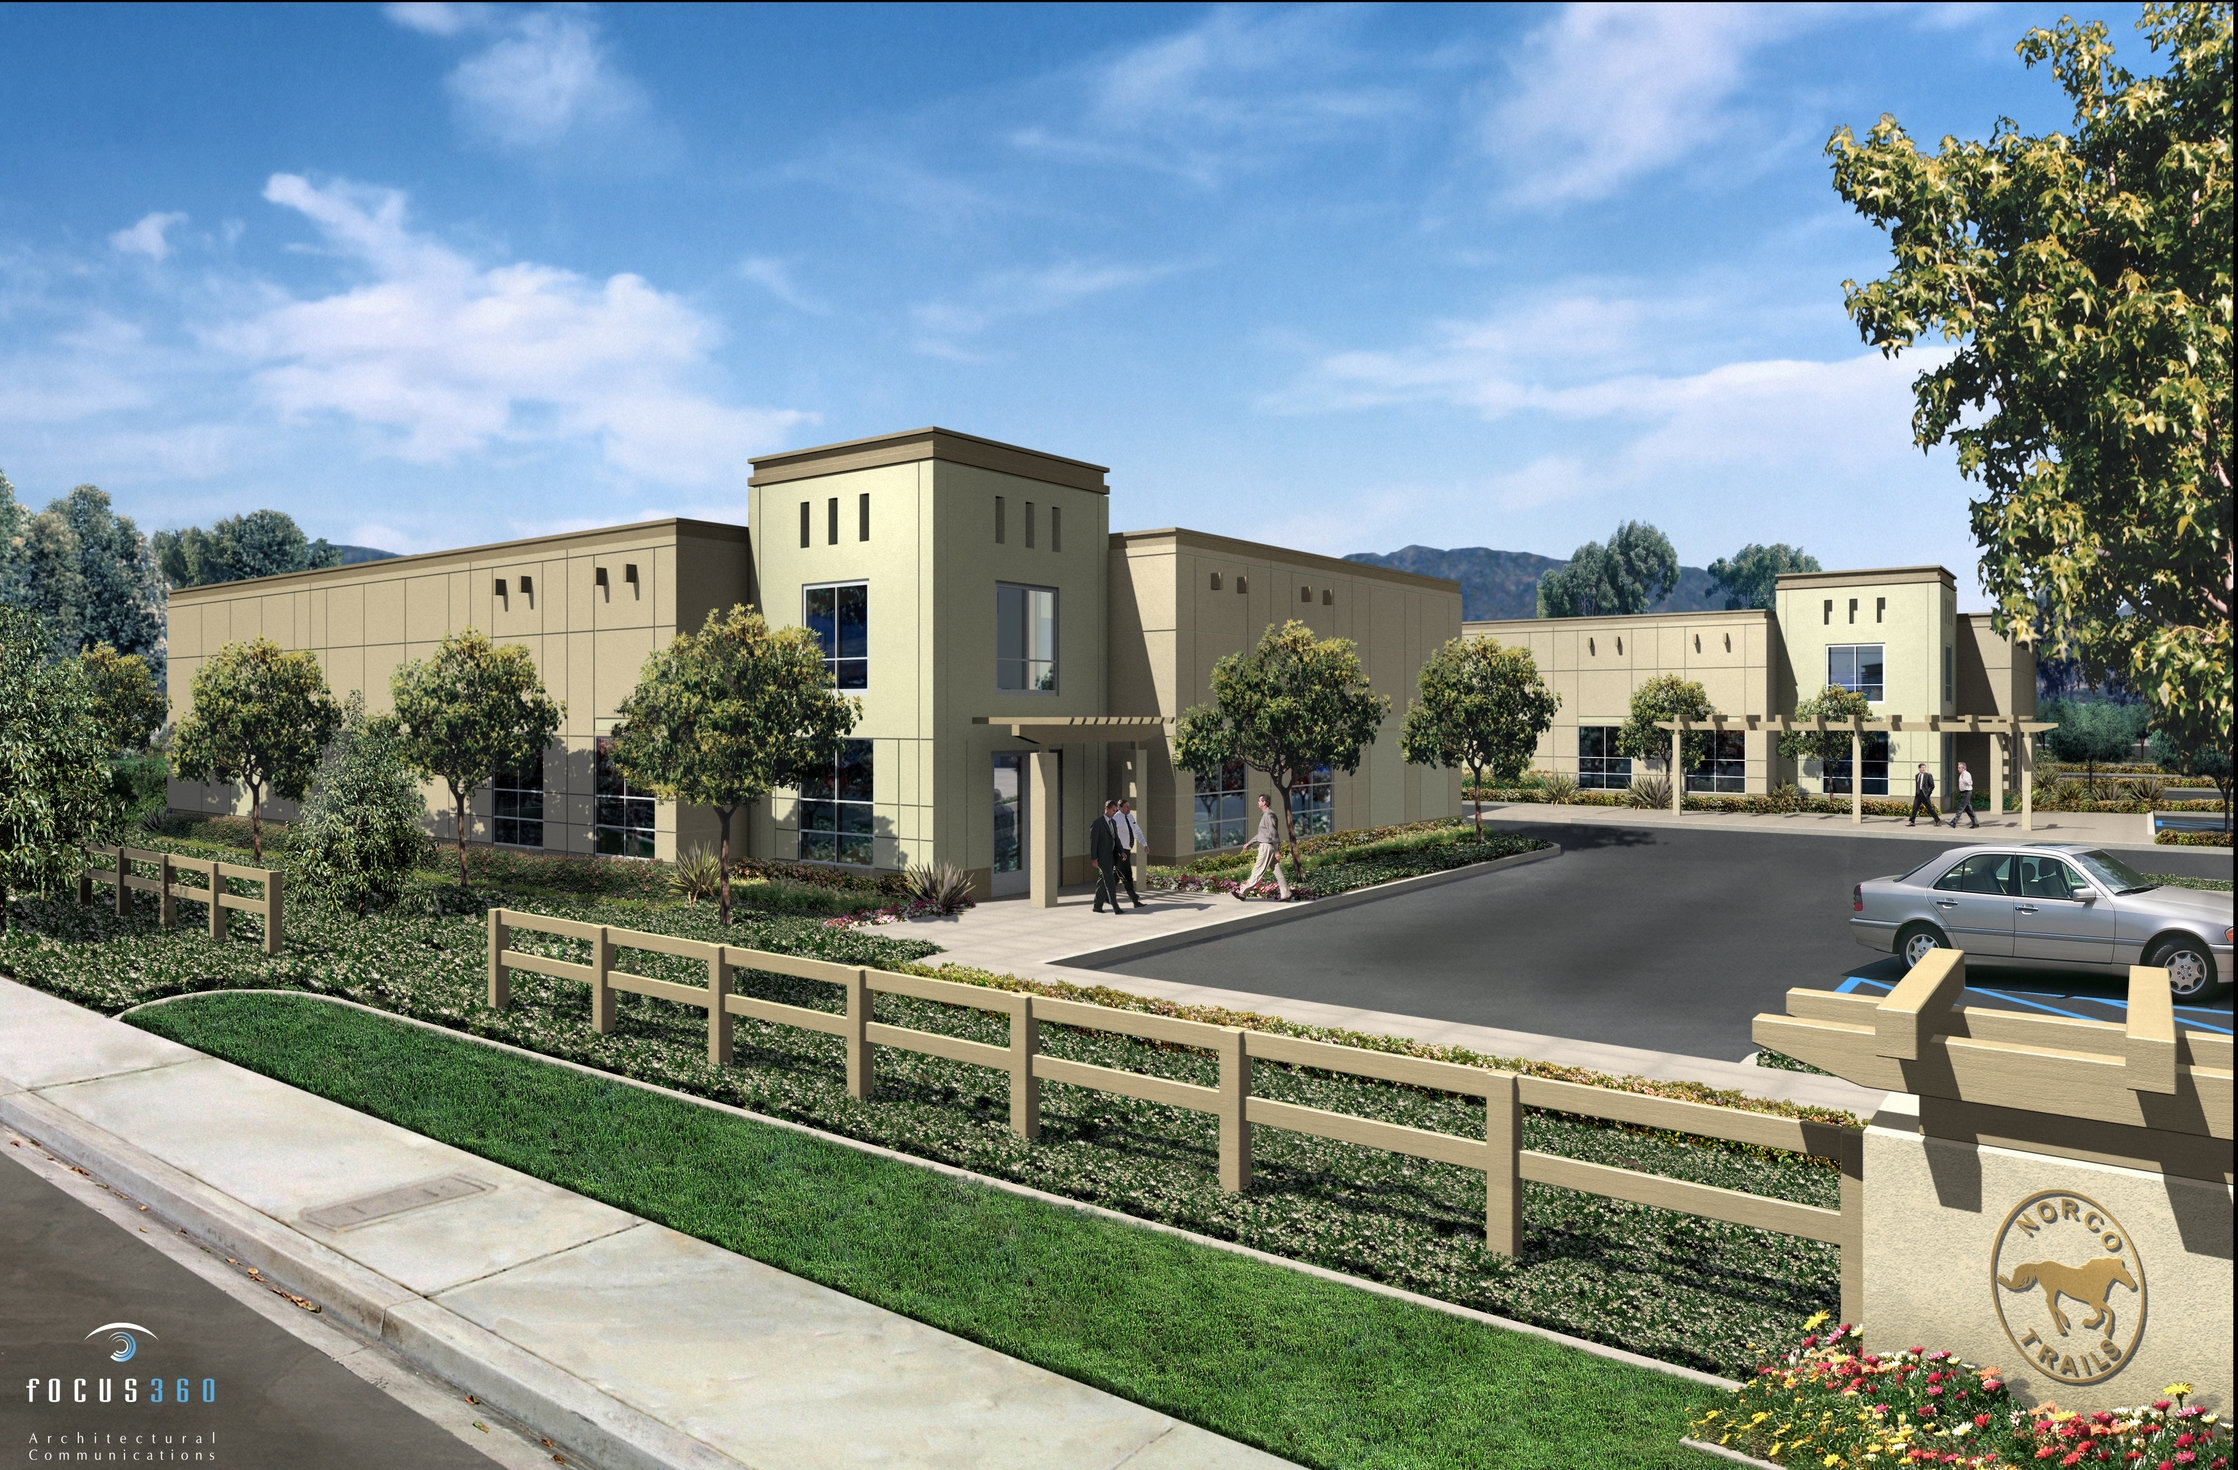 03099-MDC-Norco Trails Business Park-Martinez Design Group.jpg